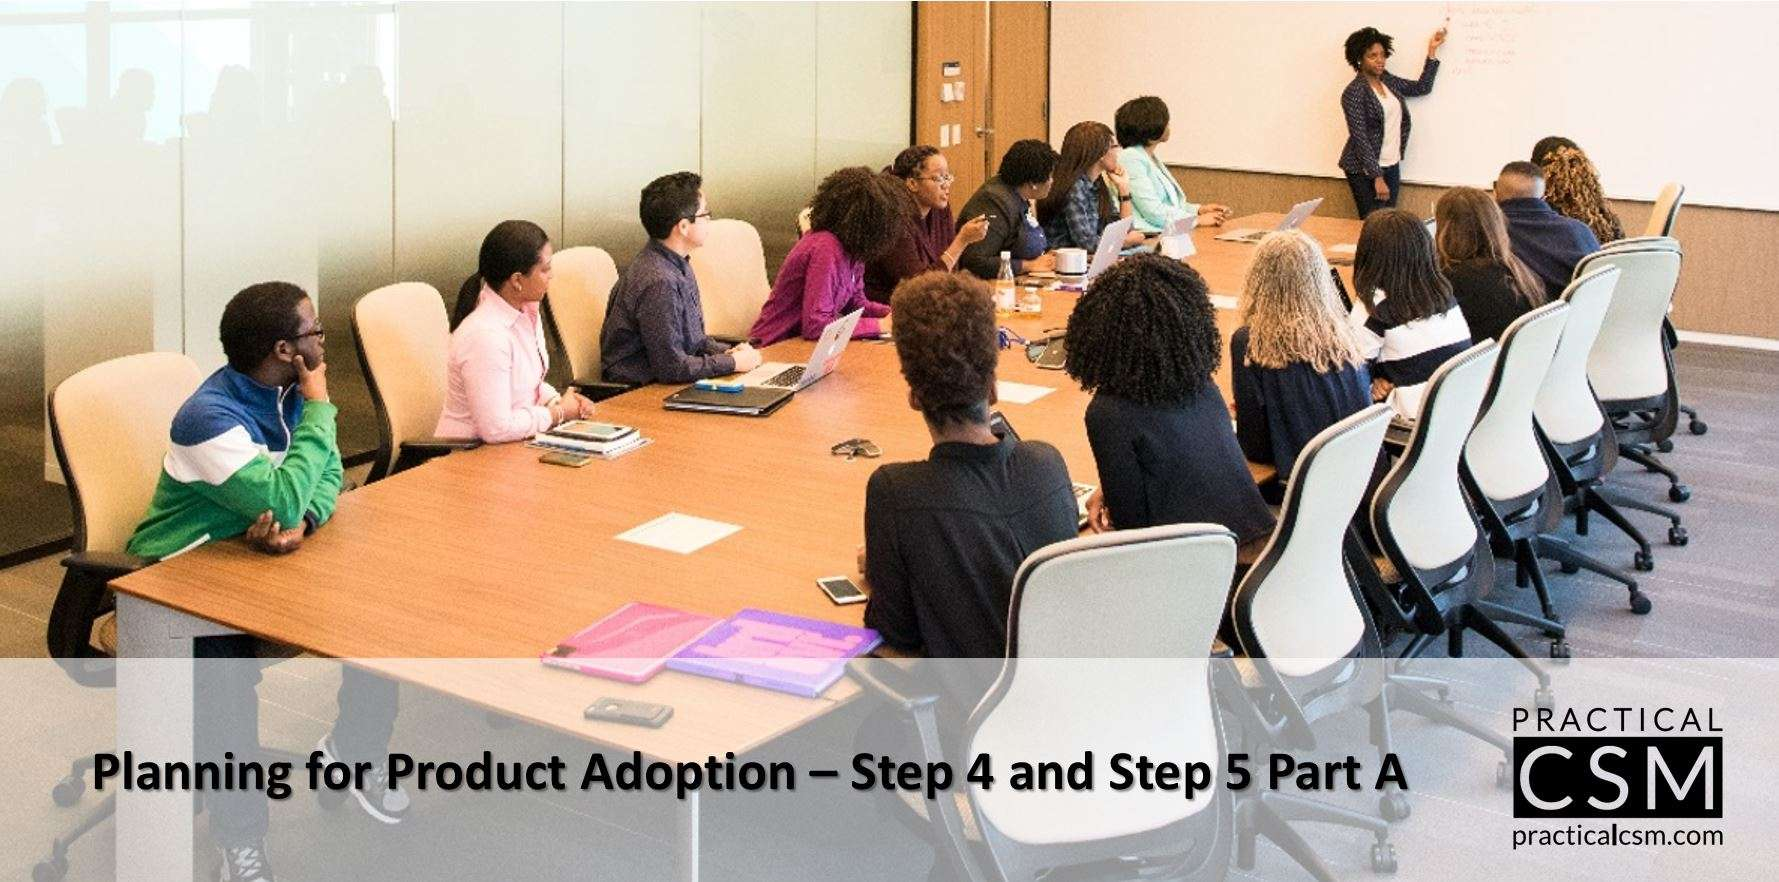 Planning for Product Adoption – Step Four and Step Five Part A